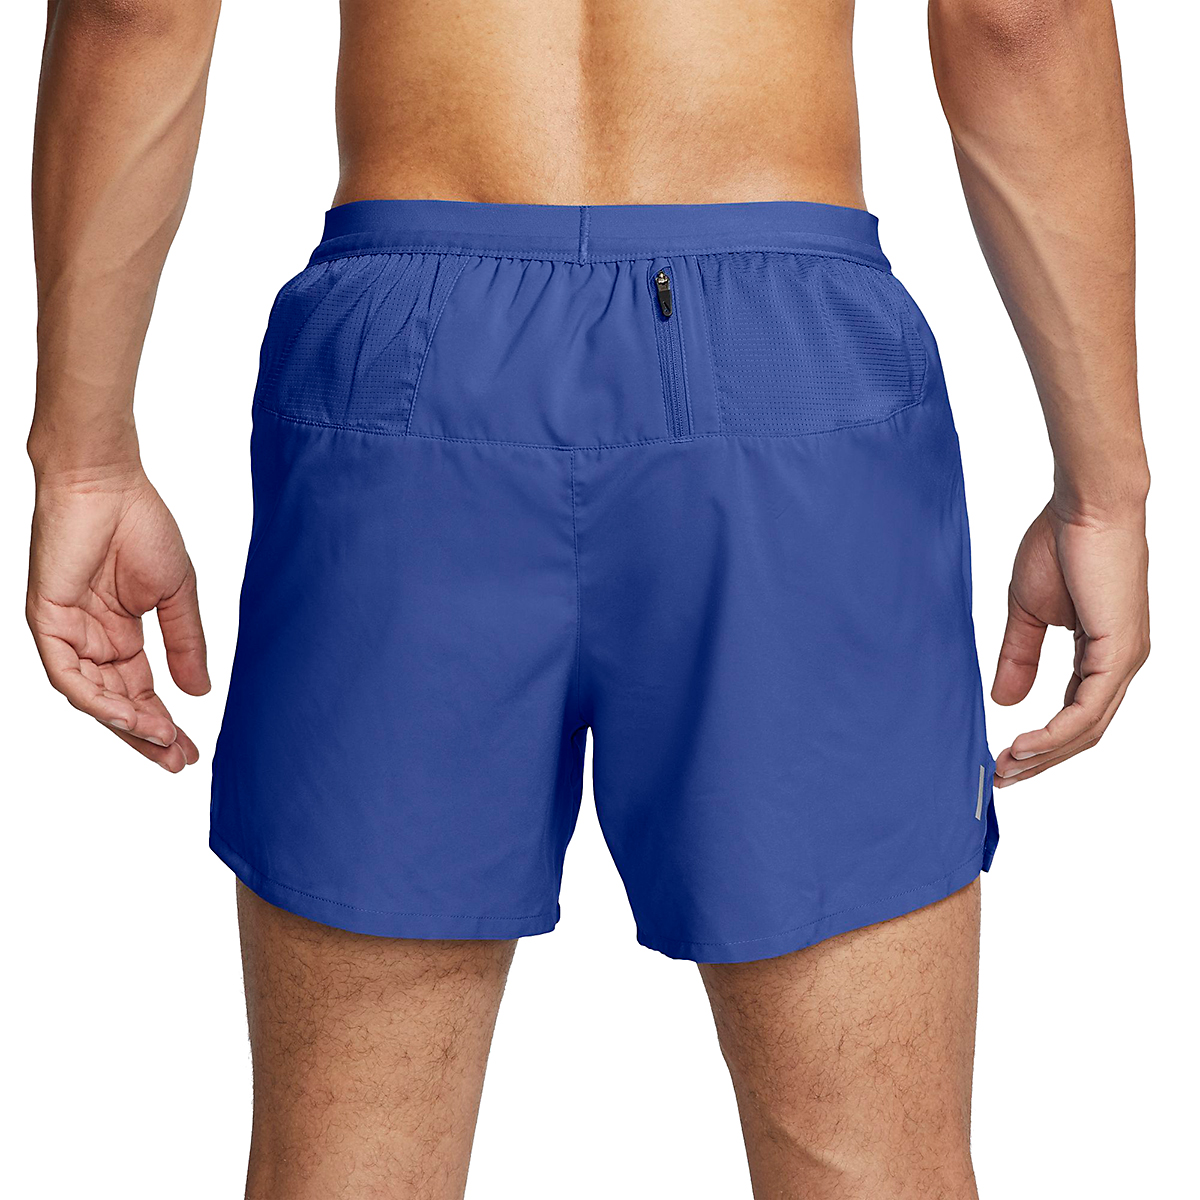 """Men's Nike Flex Stride 5"""" Brief Running Shorts - Color: Astronomy Blue - Size: S, Astronomy Blue, large, image 2"""